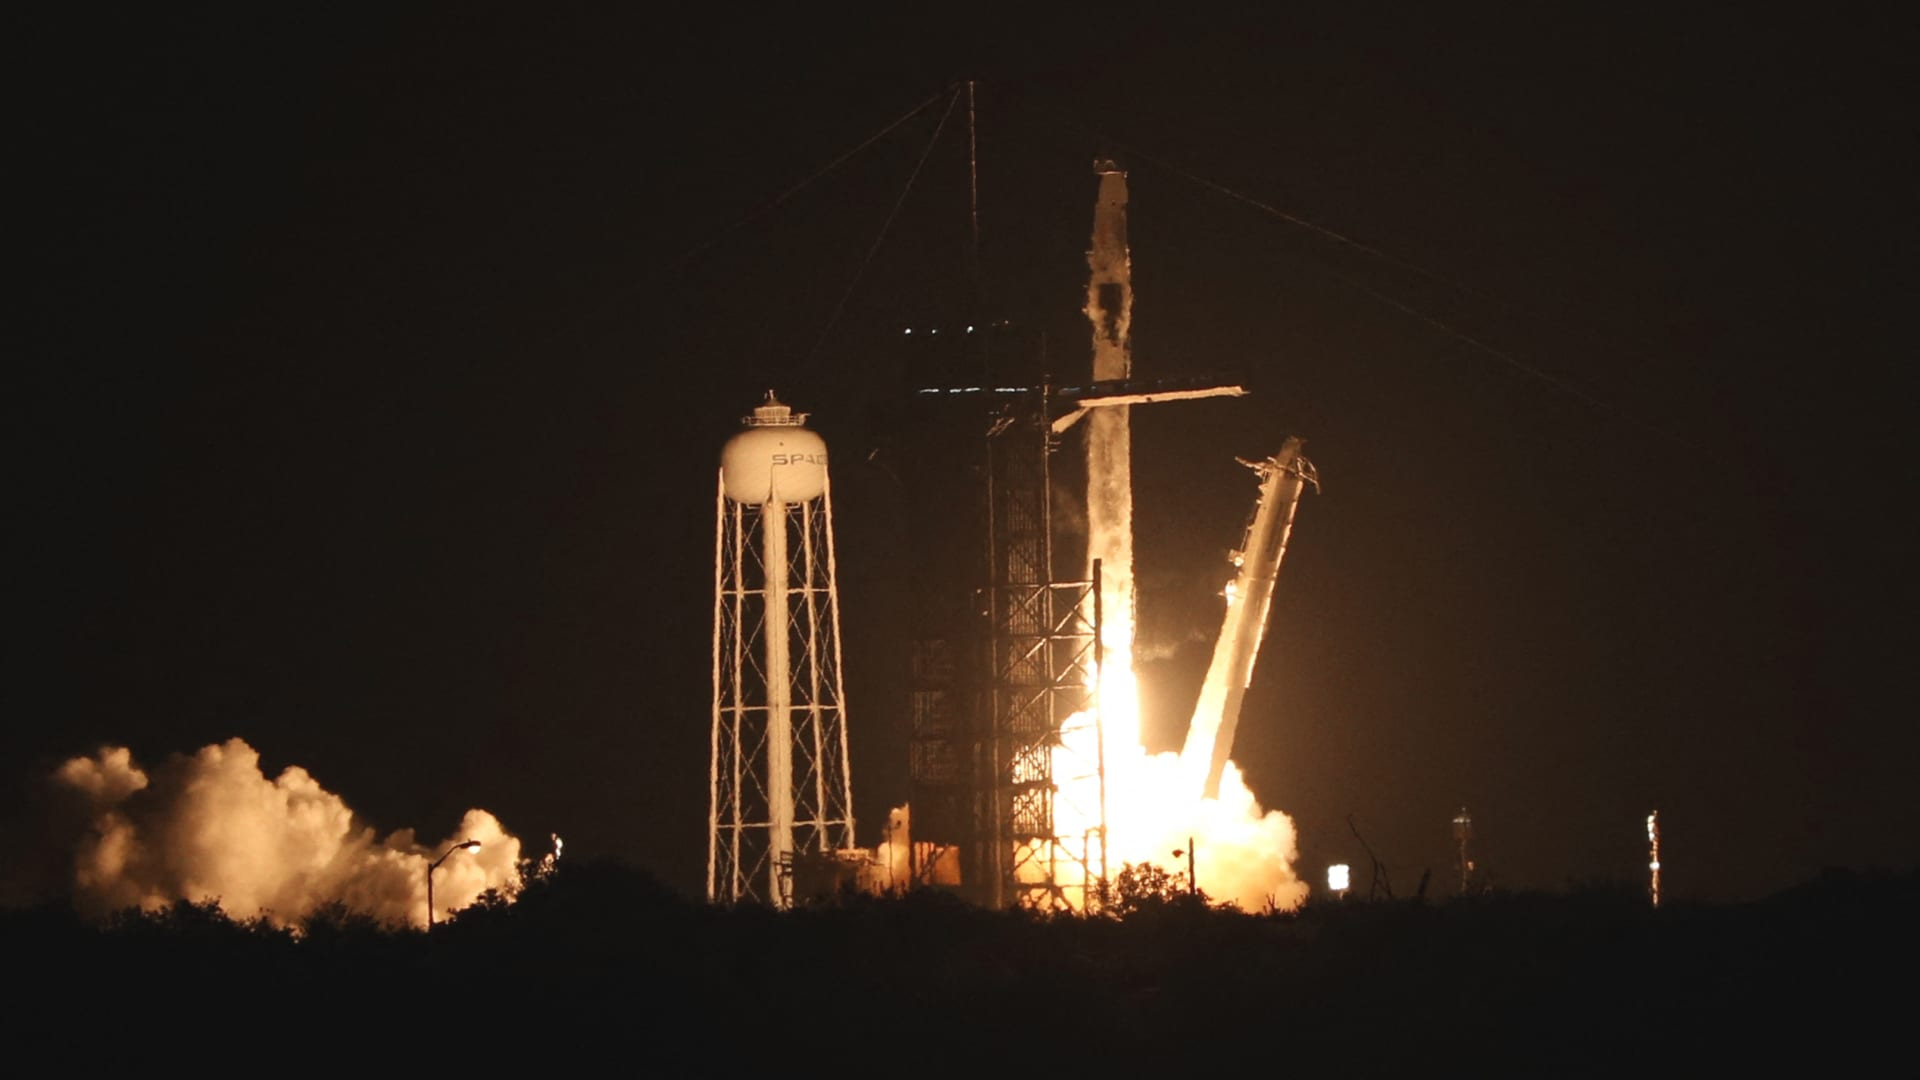 A SpaceX Falcon 9 rocket, carrying the Crew-2 mission astronauts, lifts off from launch complex 39A at the Kennedy Space Center in Florida on April 23, 2021.